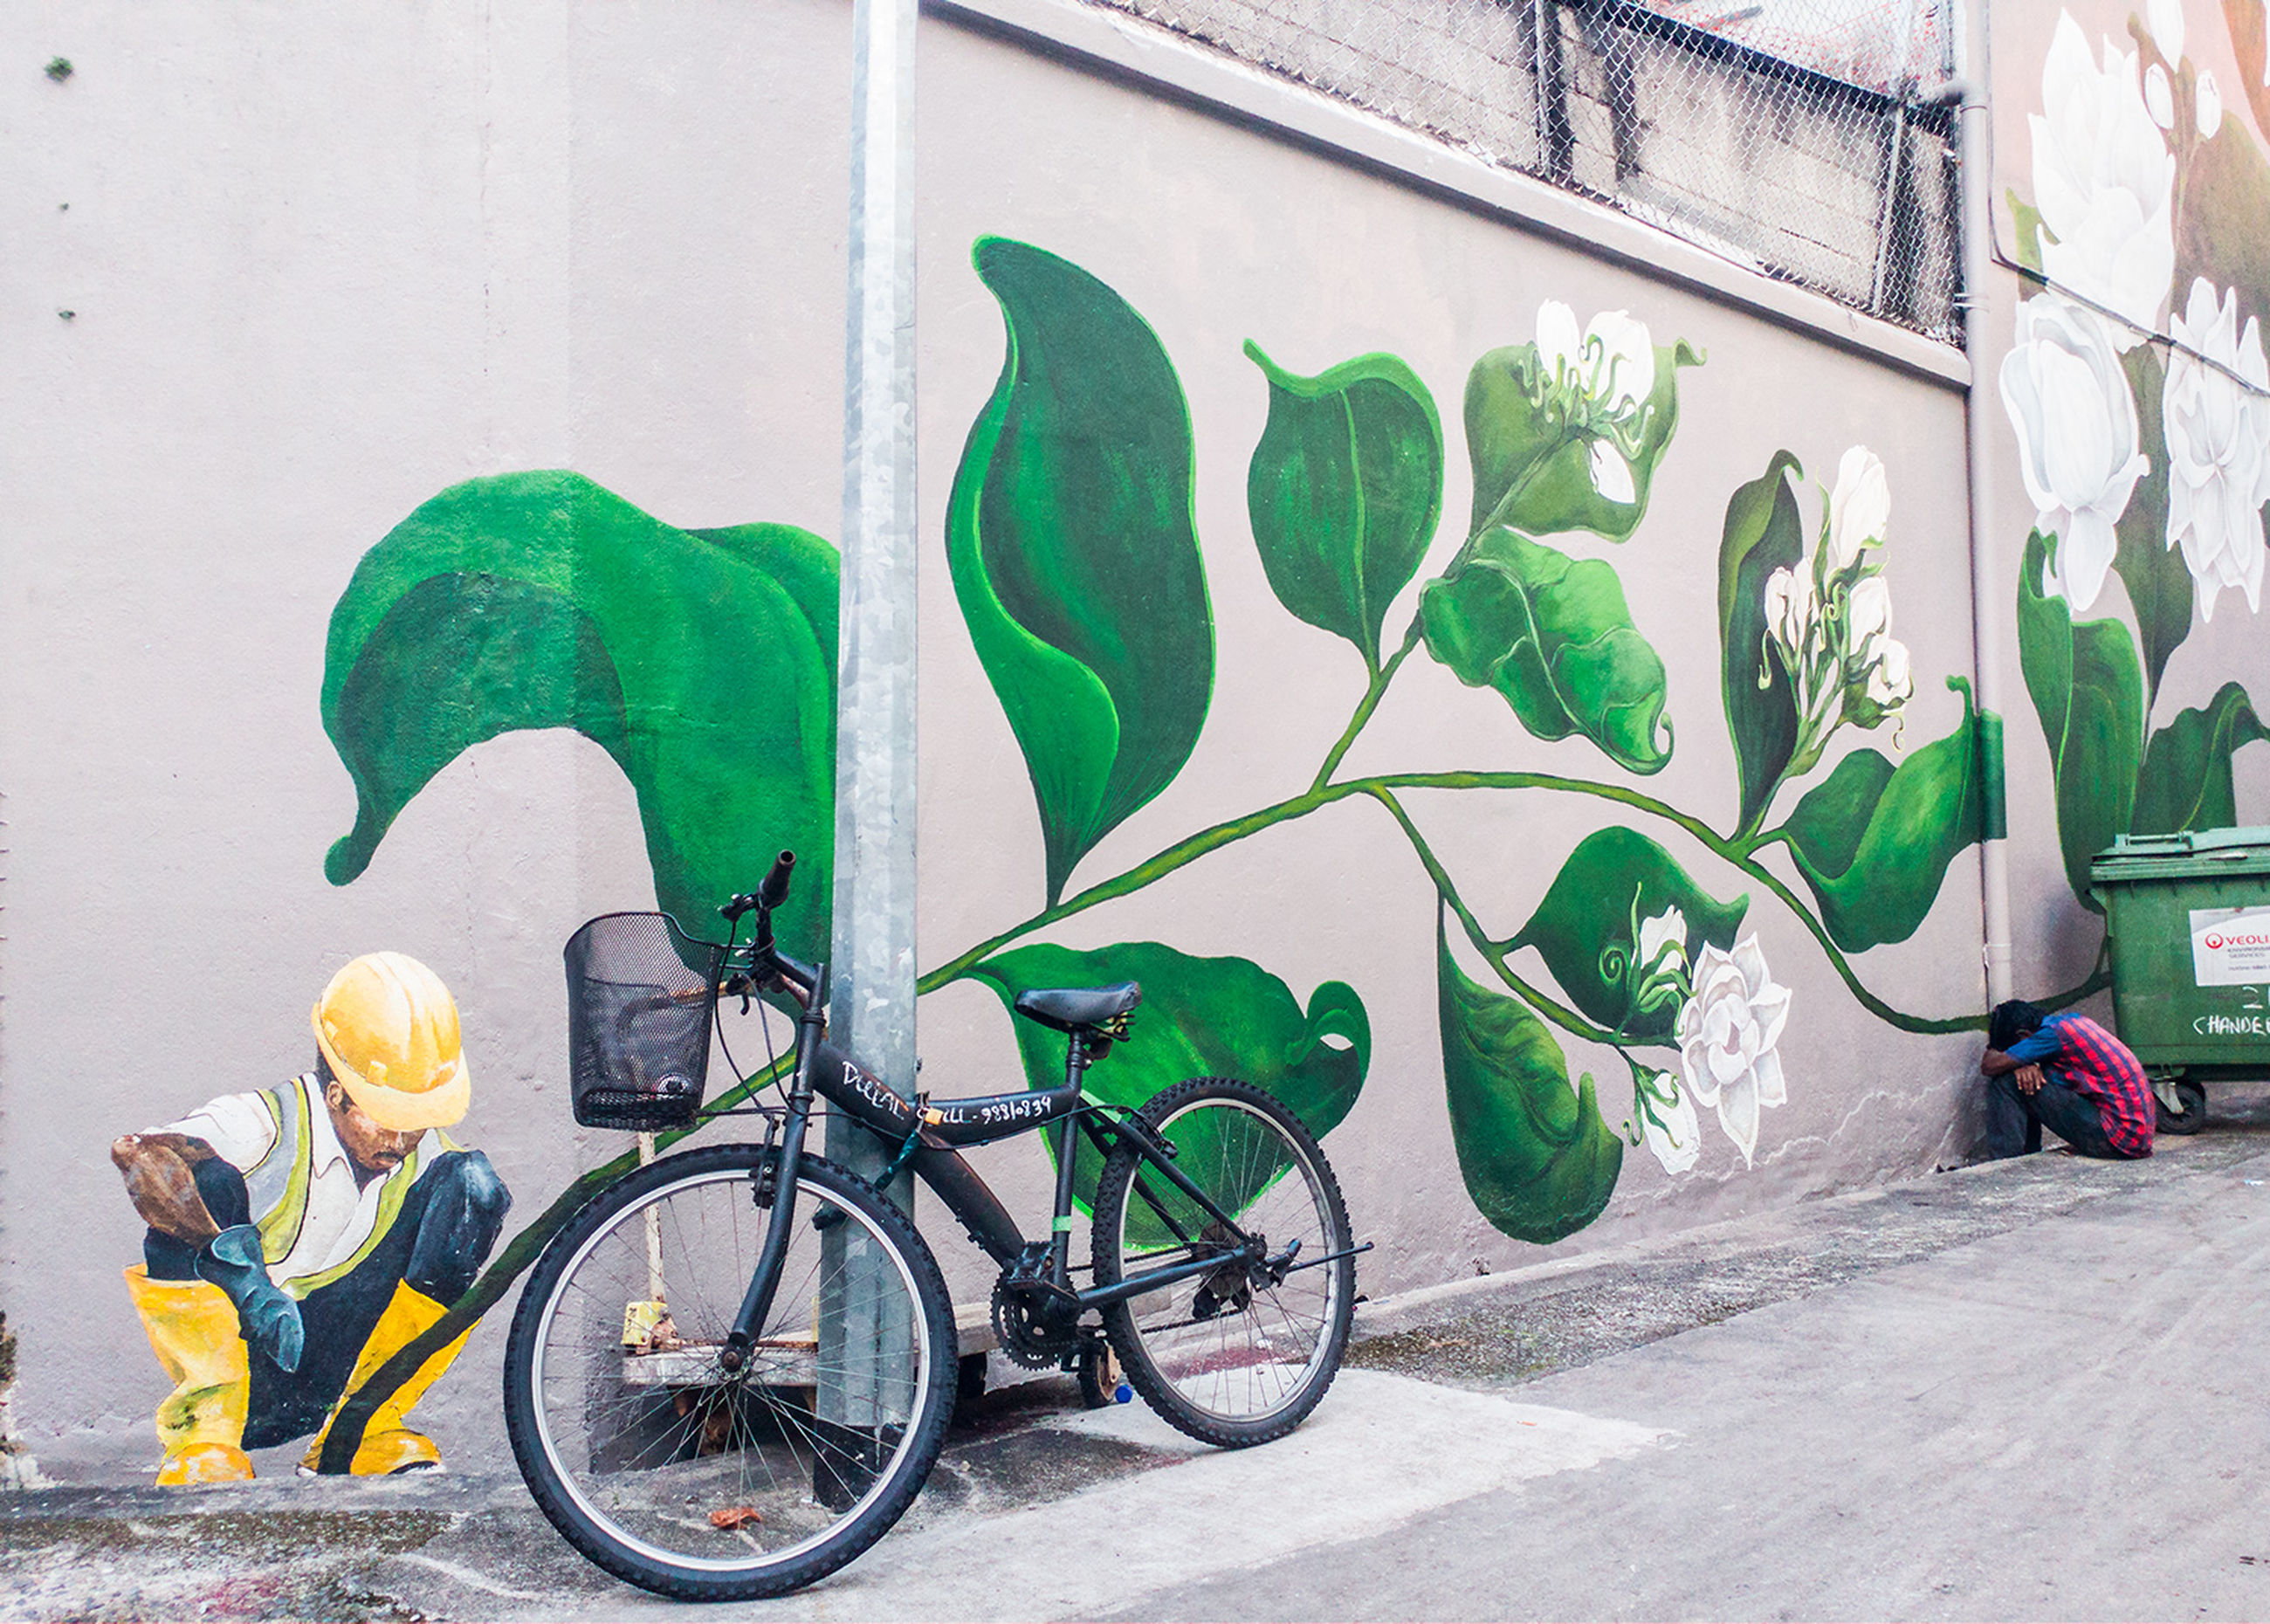 bicycle, wall - building feature, built structure, building exterior, architecture, outdoors, mode of transport, day, headwear, transportation, green color, land vehicle, helmet, stationary, no people